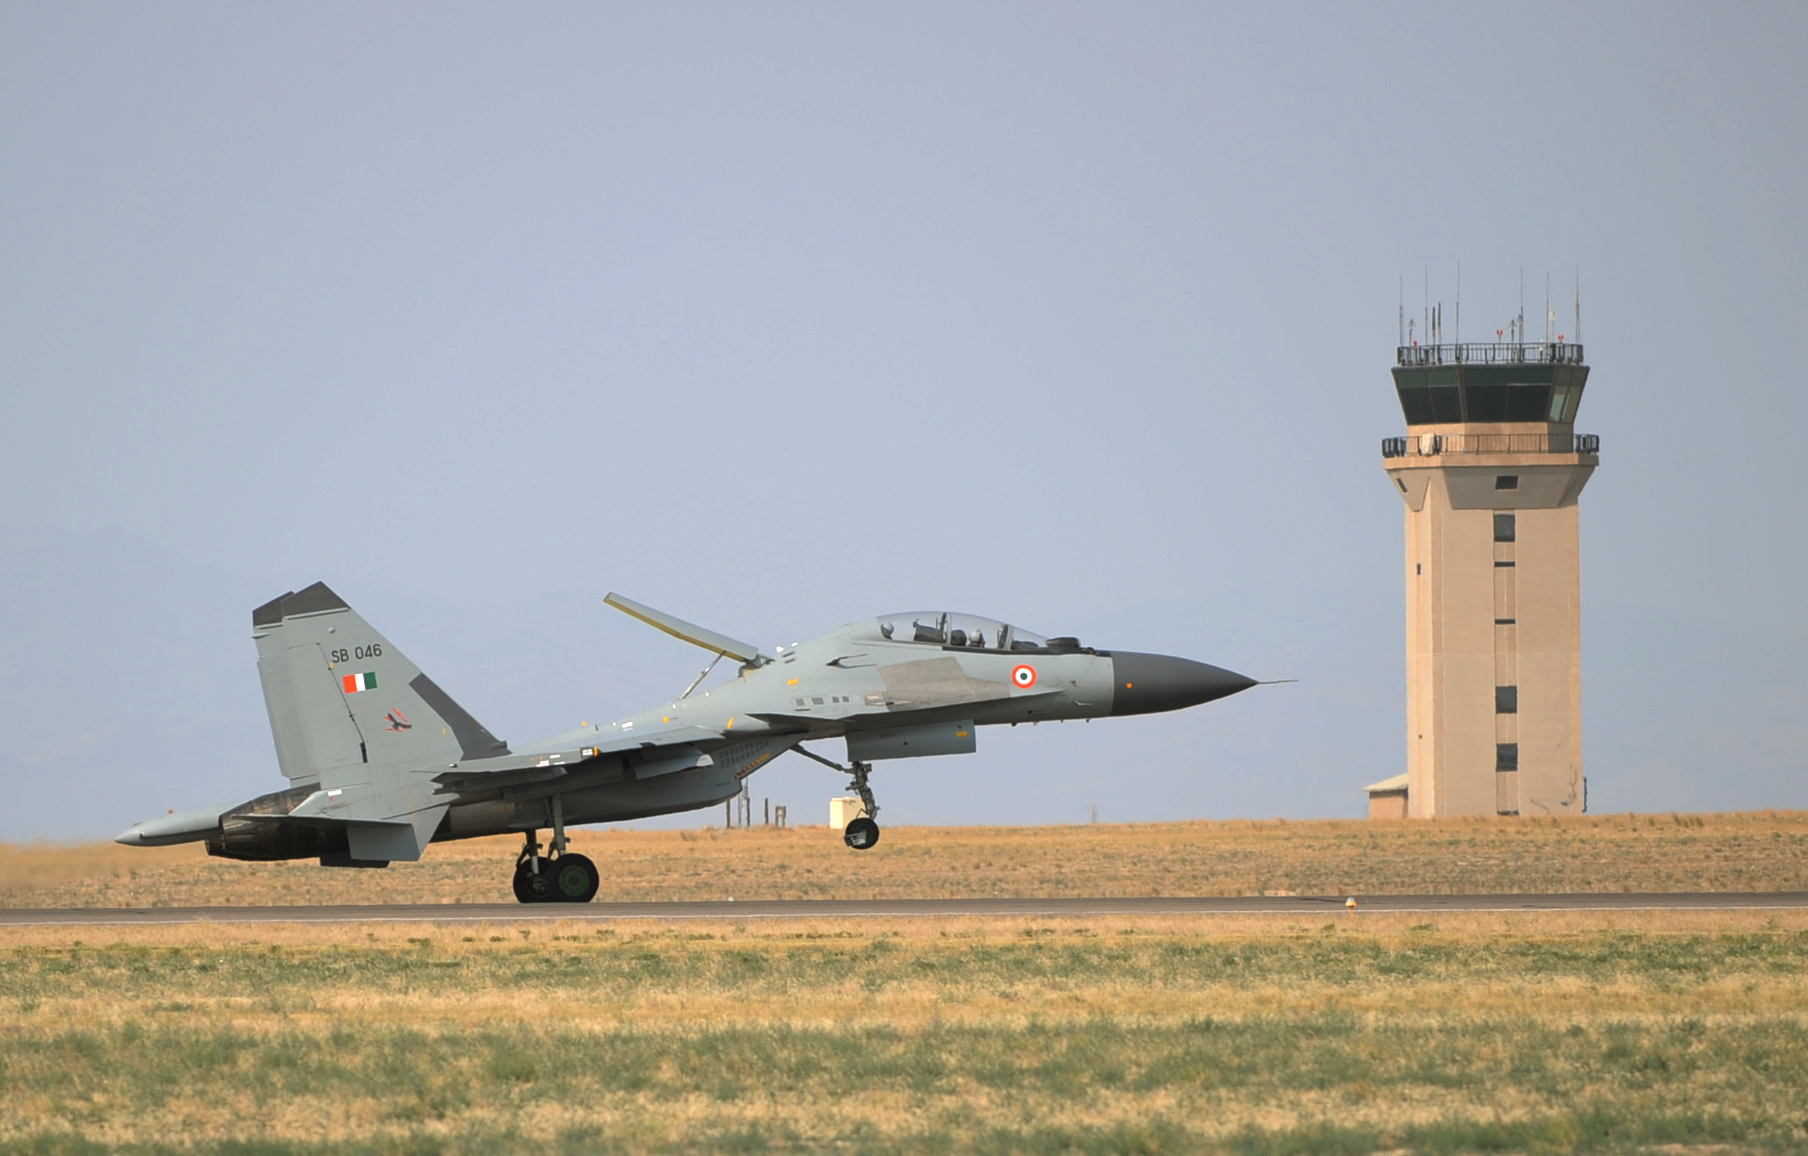 An iconic photo of the Su - 30 MKI aircraft. Source - Net.